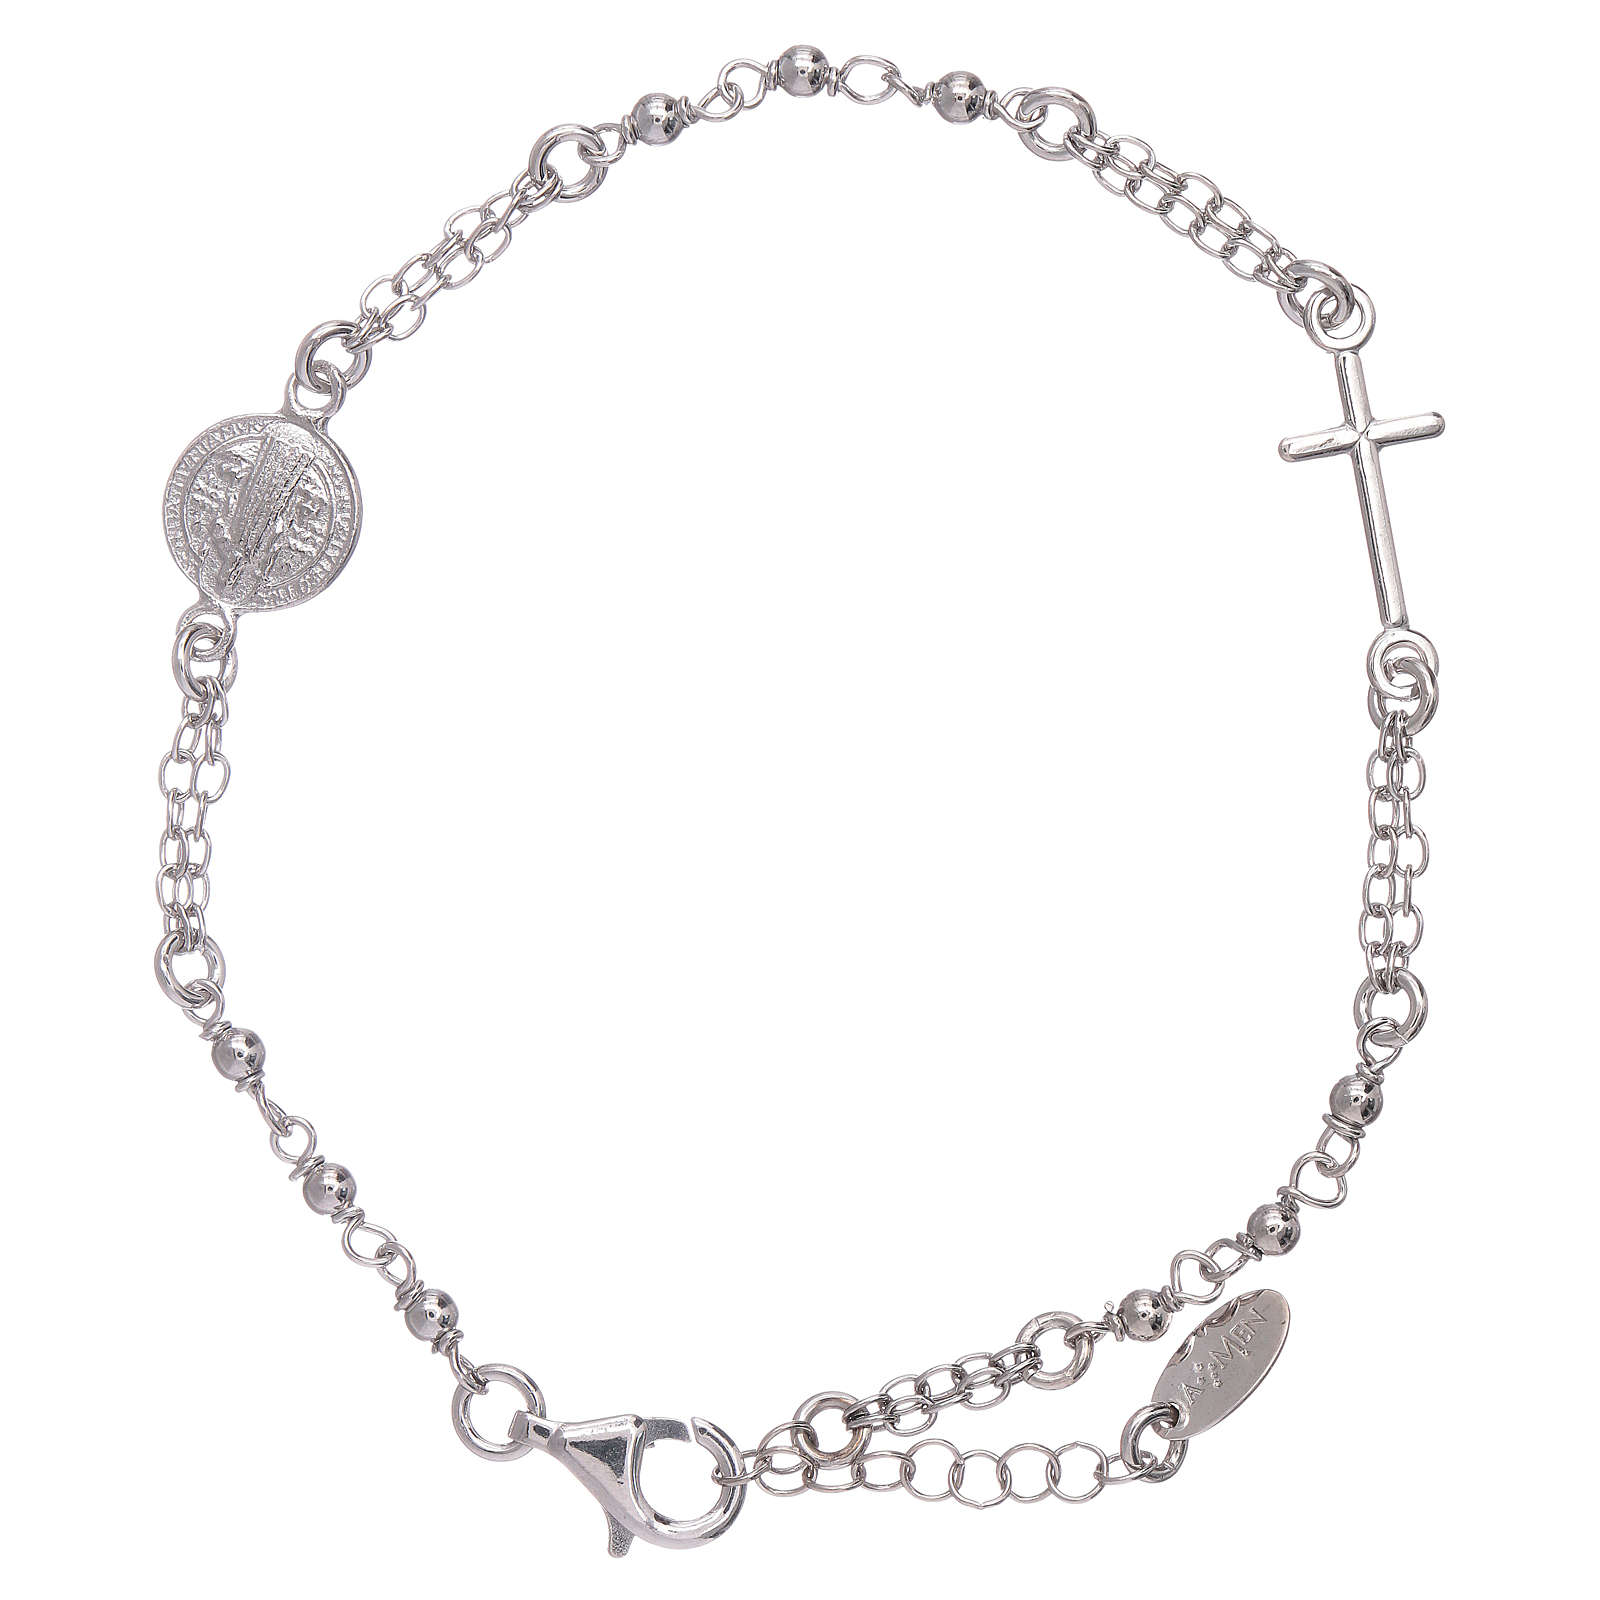 AMEN Saint Benedict rosary bracelet in 925 sterling silver finished in rhodium 4